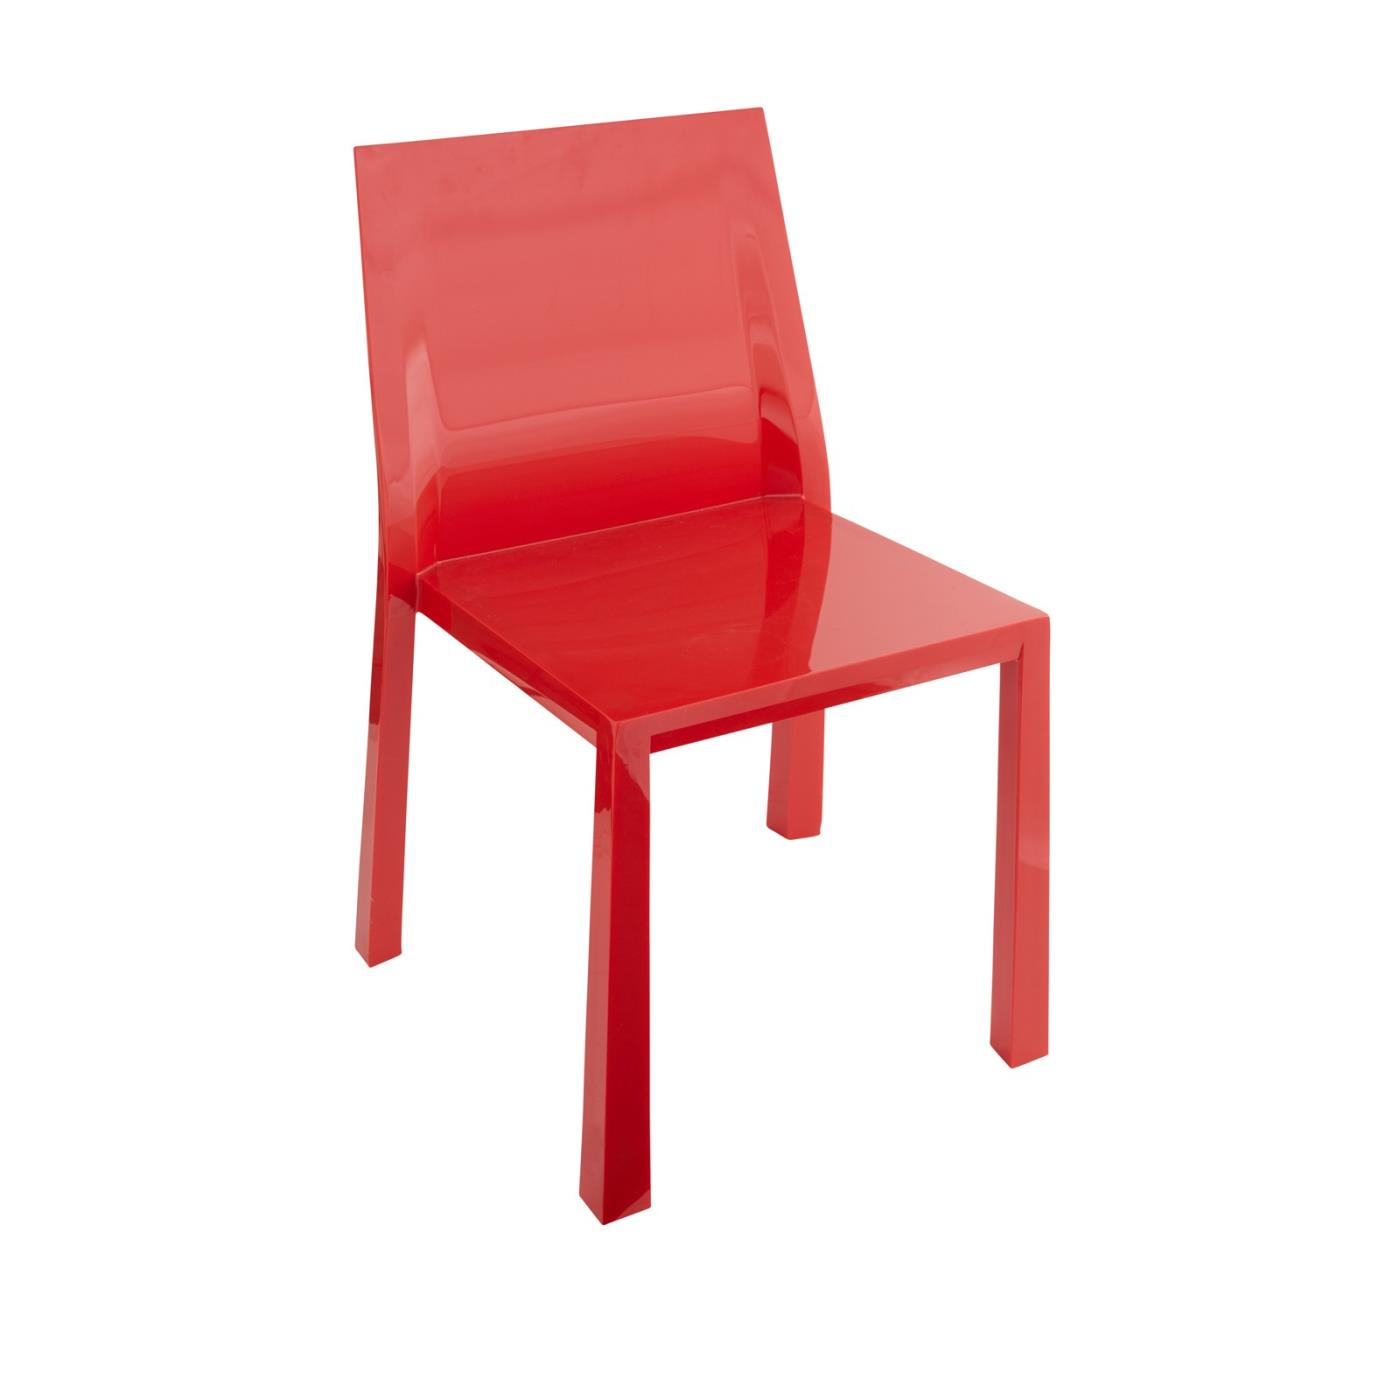 Bell Chair - Red